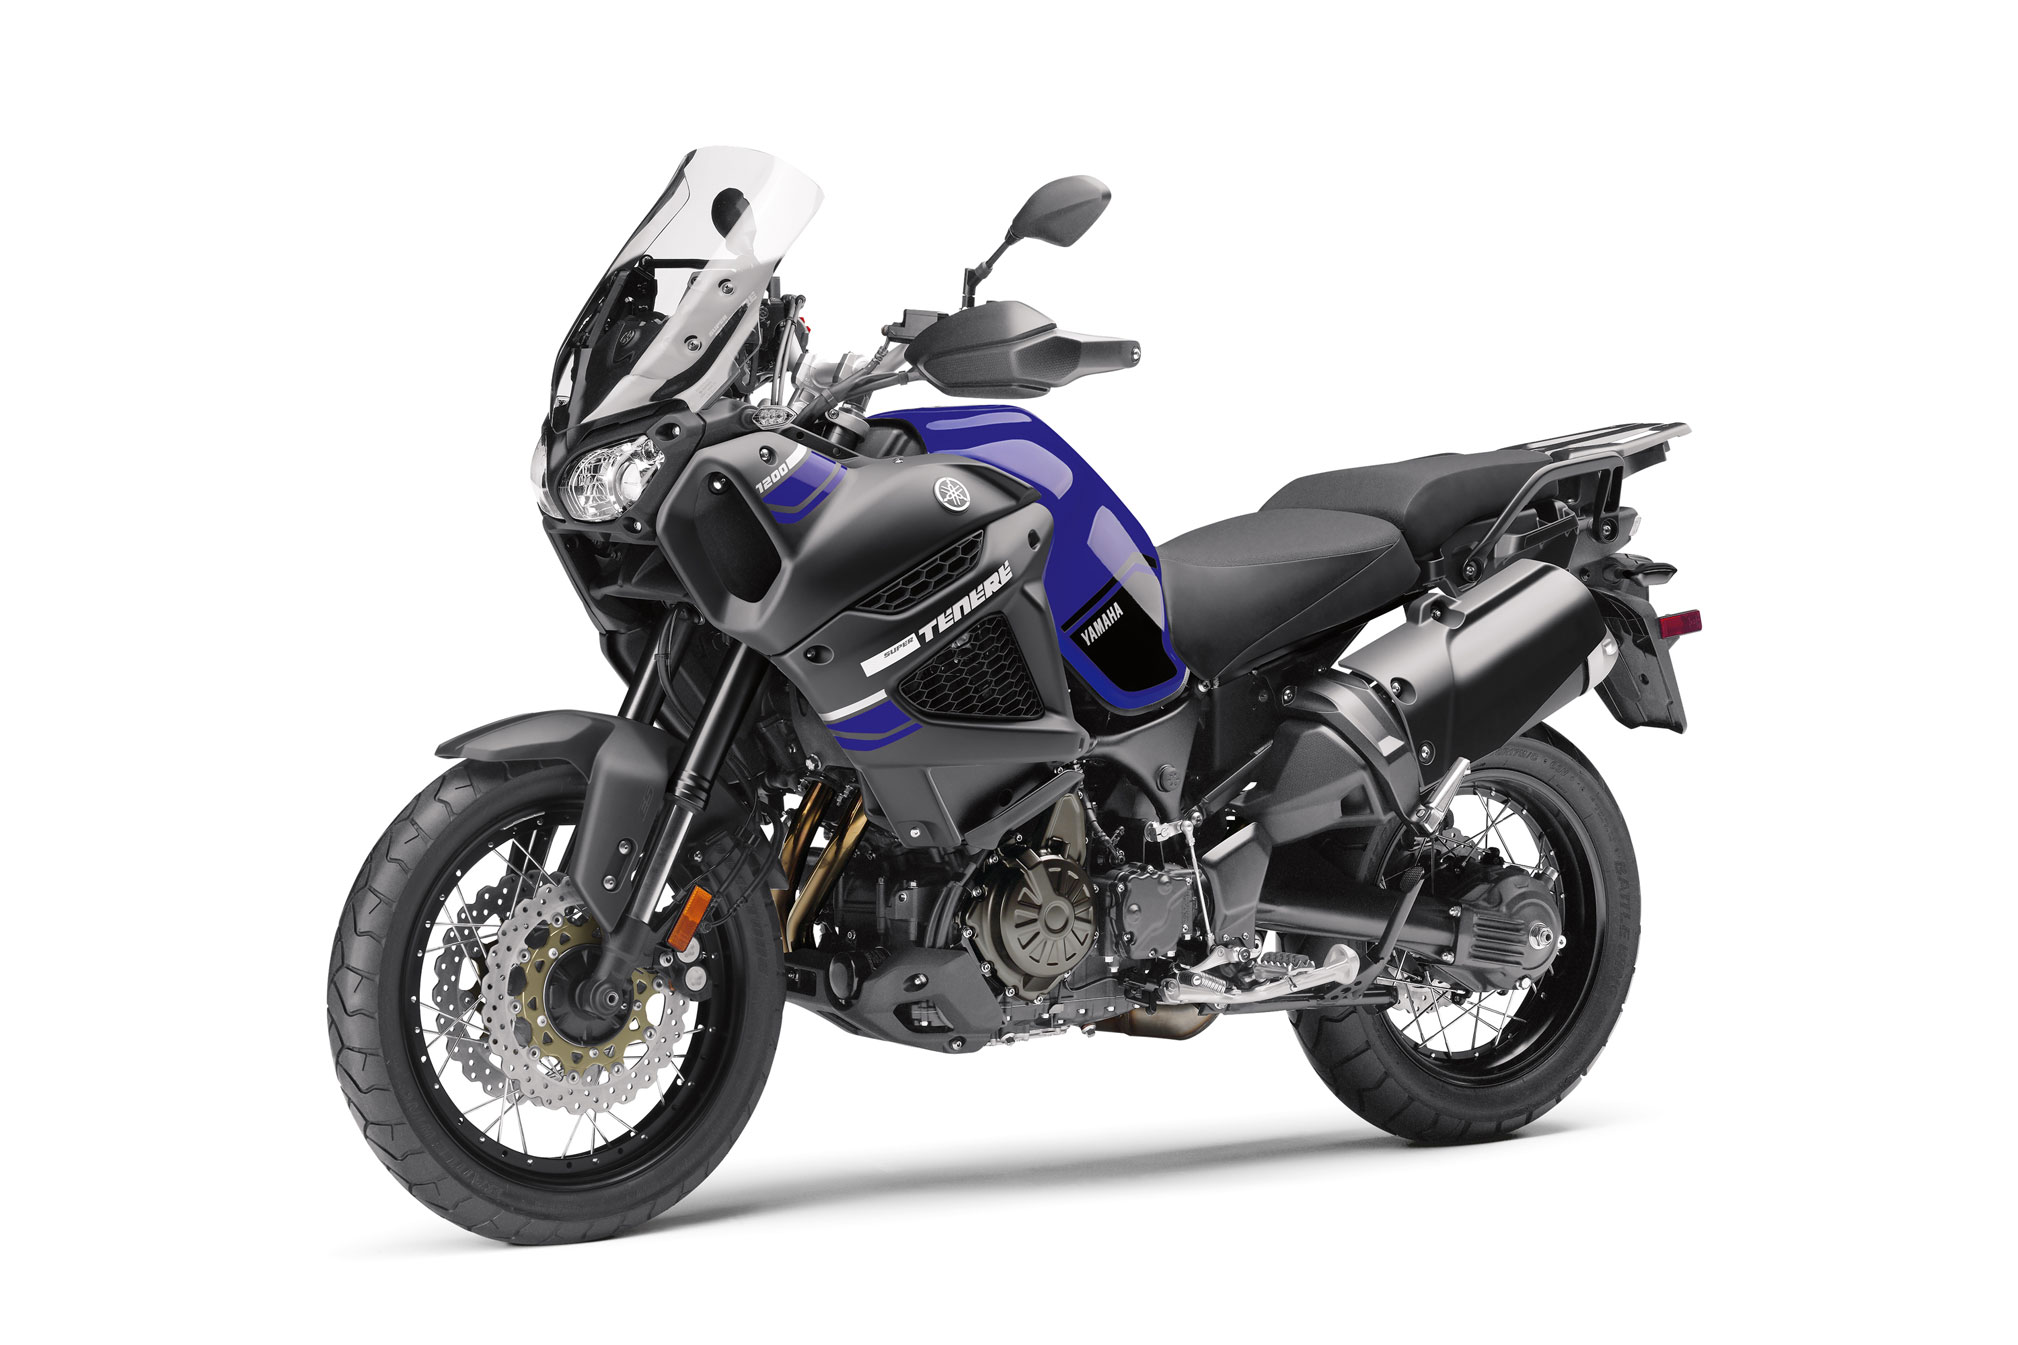 2018 yamaha super tenere es review totalmotorcycle for Yamaha new motorcycles 2018